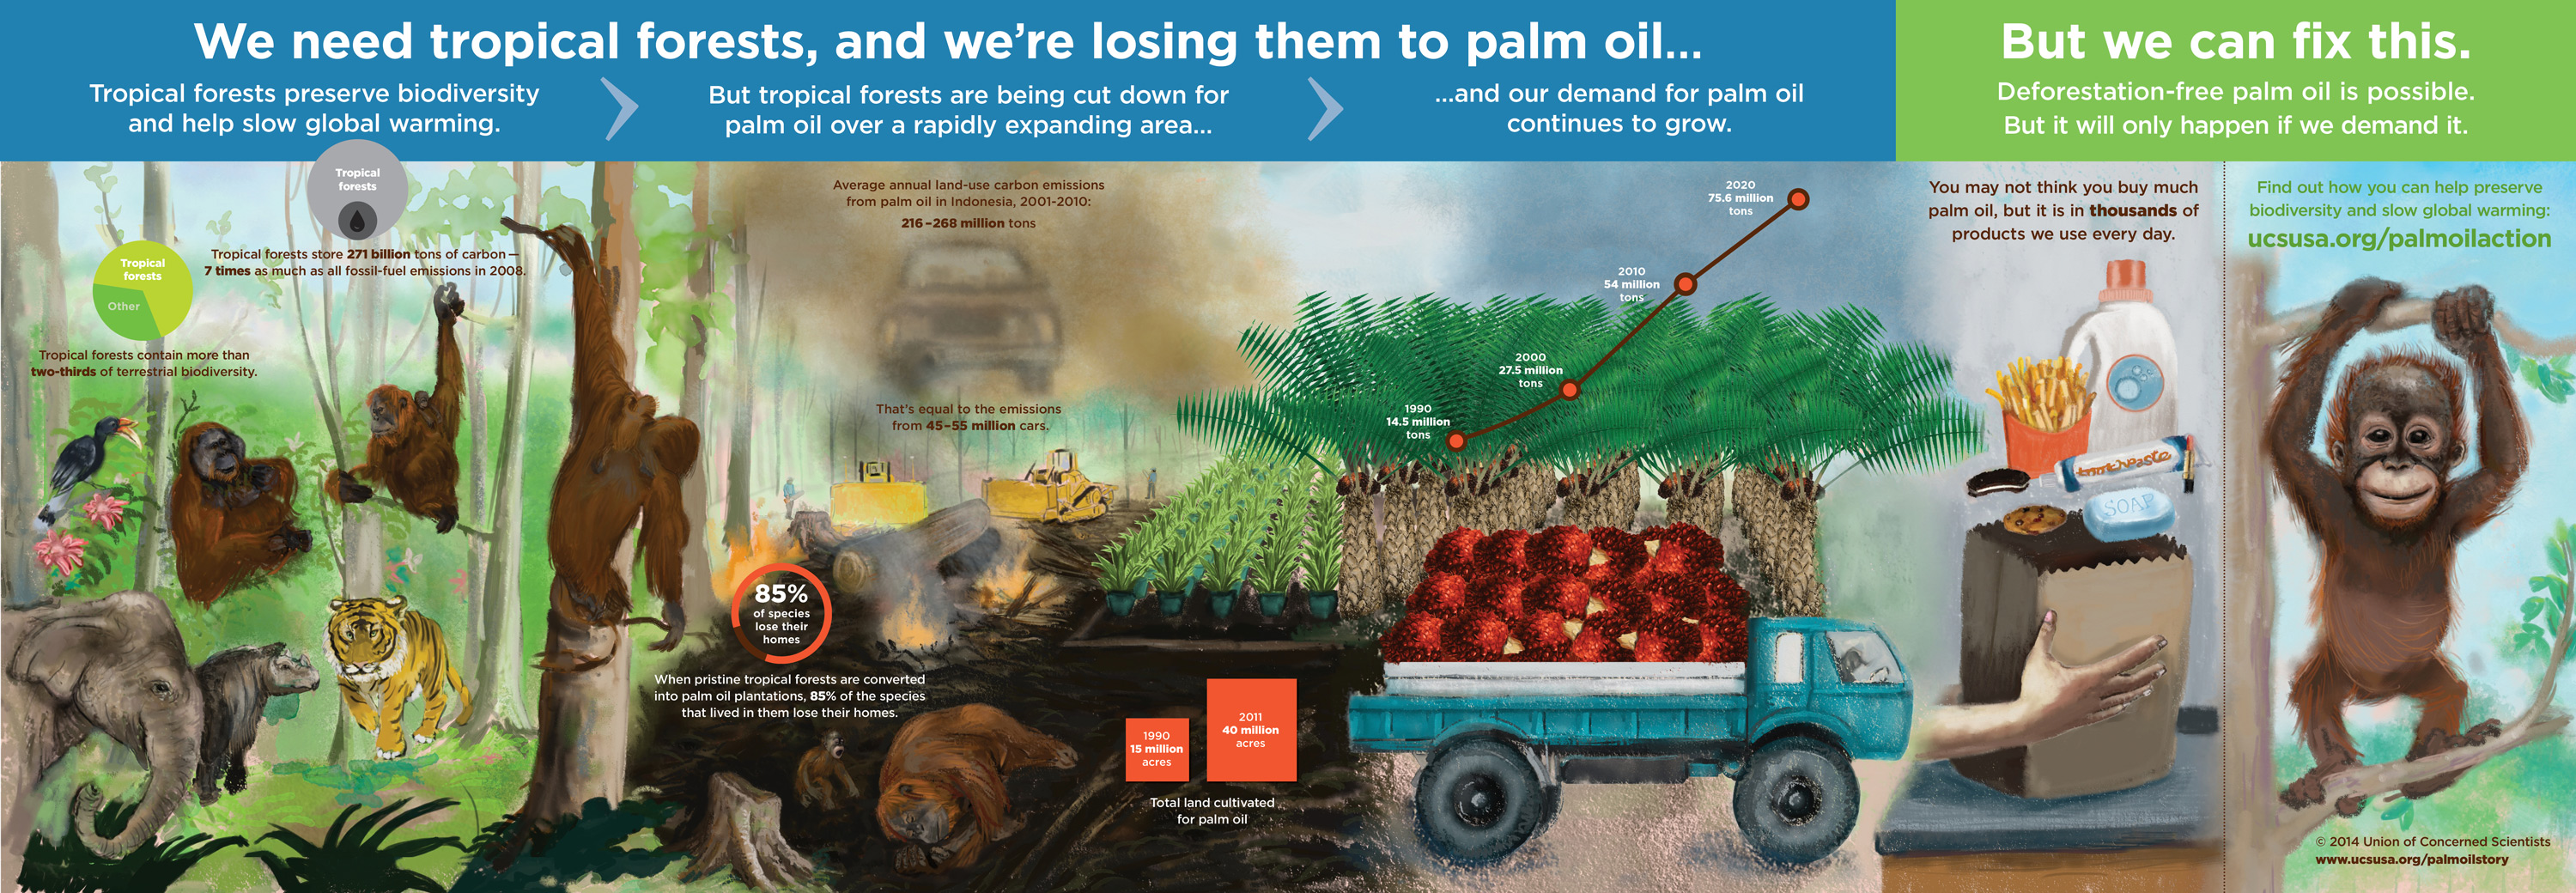 http://www.ucsusa.org/sites/default/files/legacy/assets/images/gw/Palm-Oil-2-6-14-2216px-1.jpg